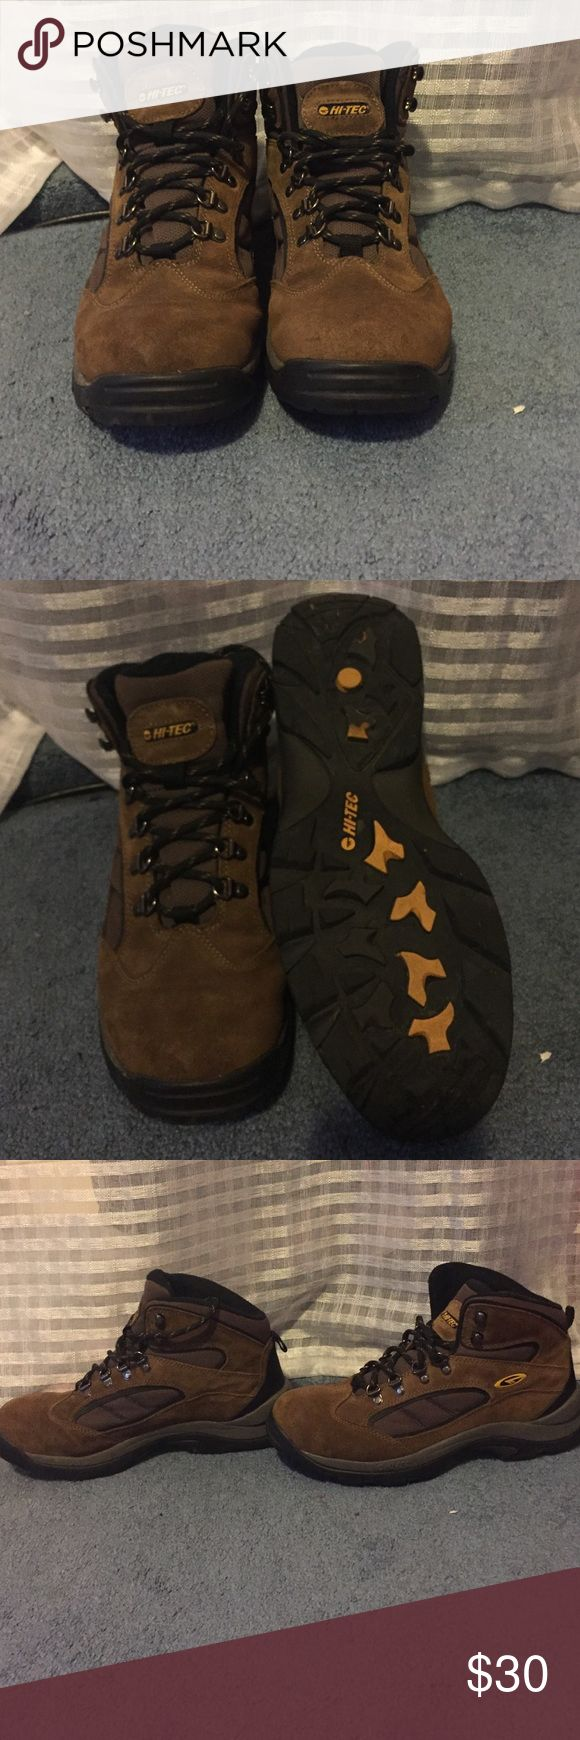 Men's hiking boots Men's hi-tec size 11 hiking boots. Only worn once great condition!! Hi-Tec Shoes Athletic Shoes